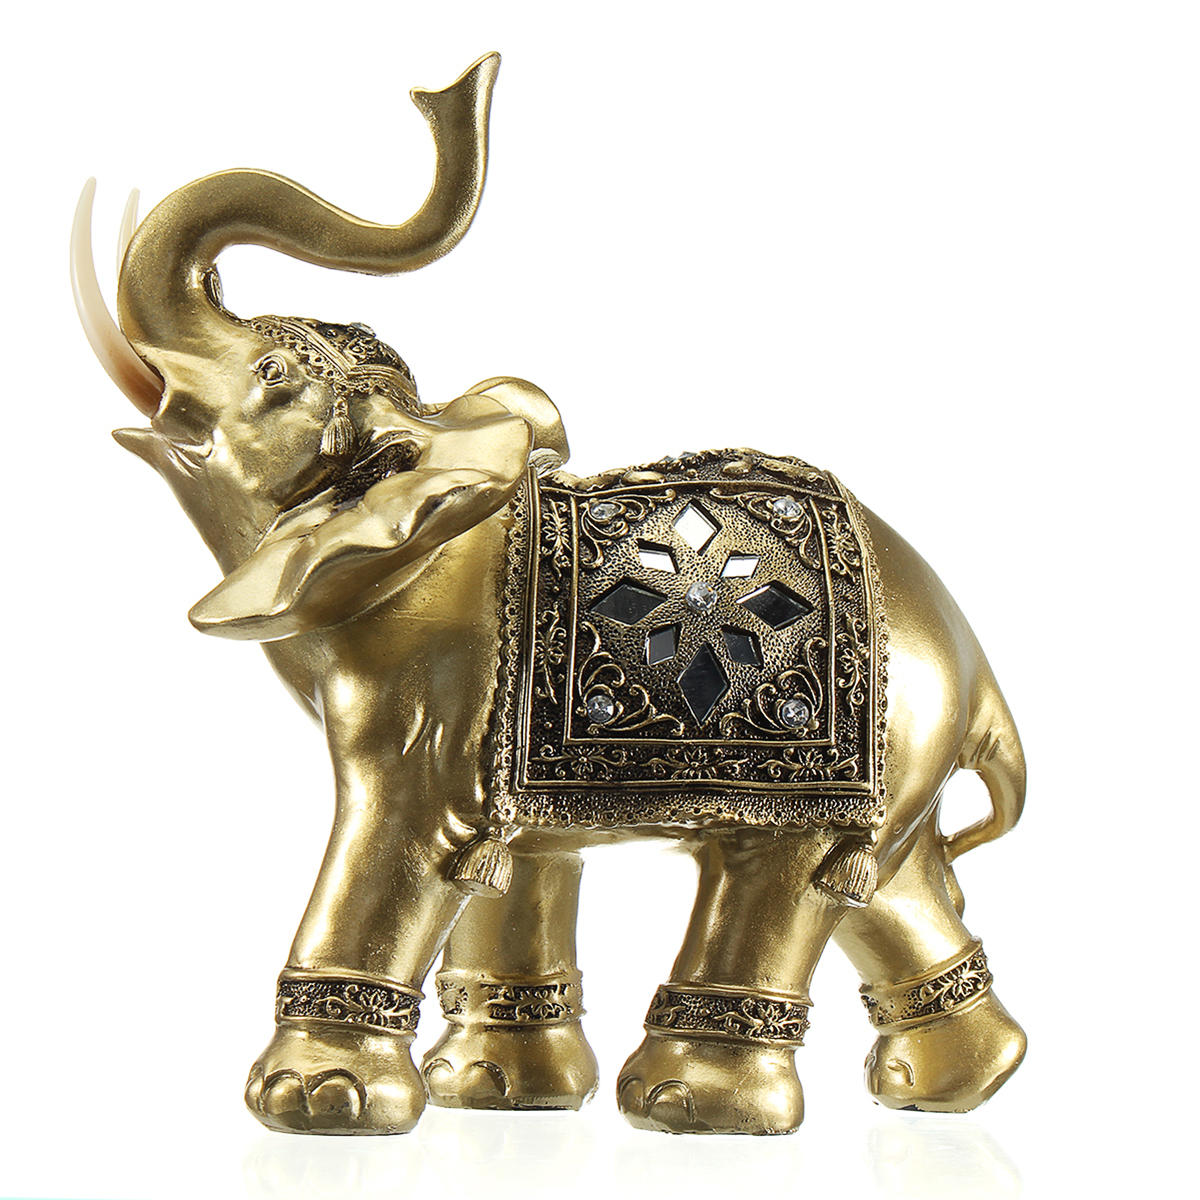 Lucky Charm Fengshui Mascot Golden Elephant Resin Mini Statue Home Desk Ornaments Gifts Home Decorations - 2